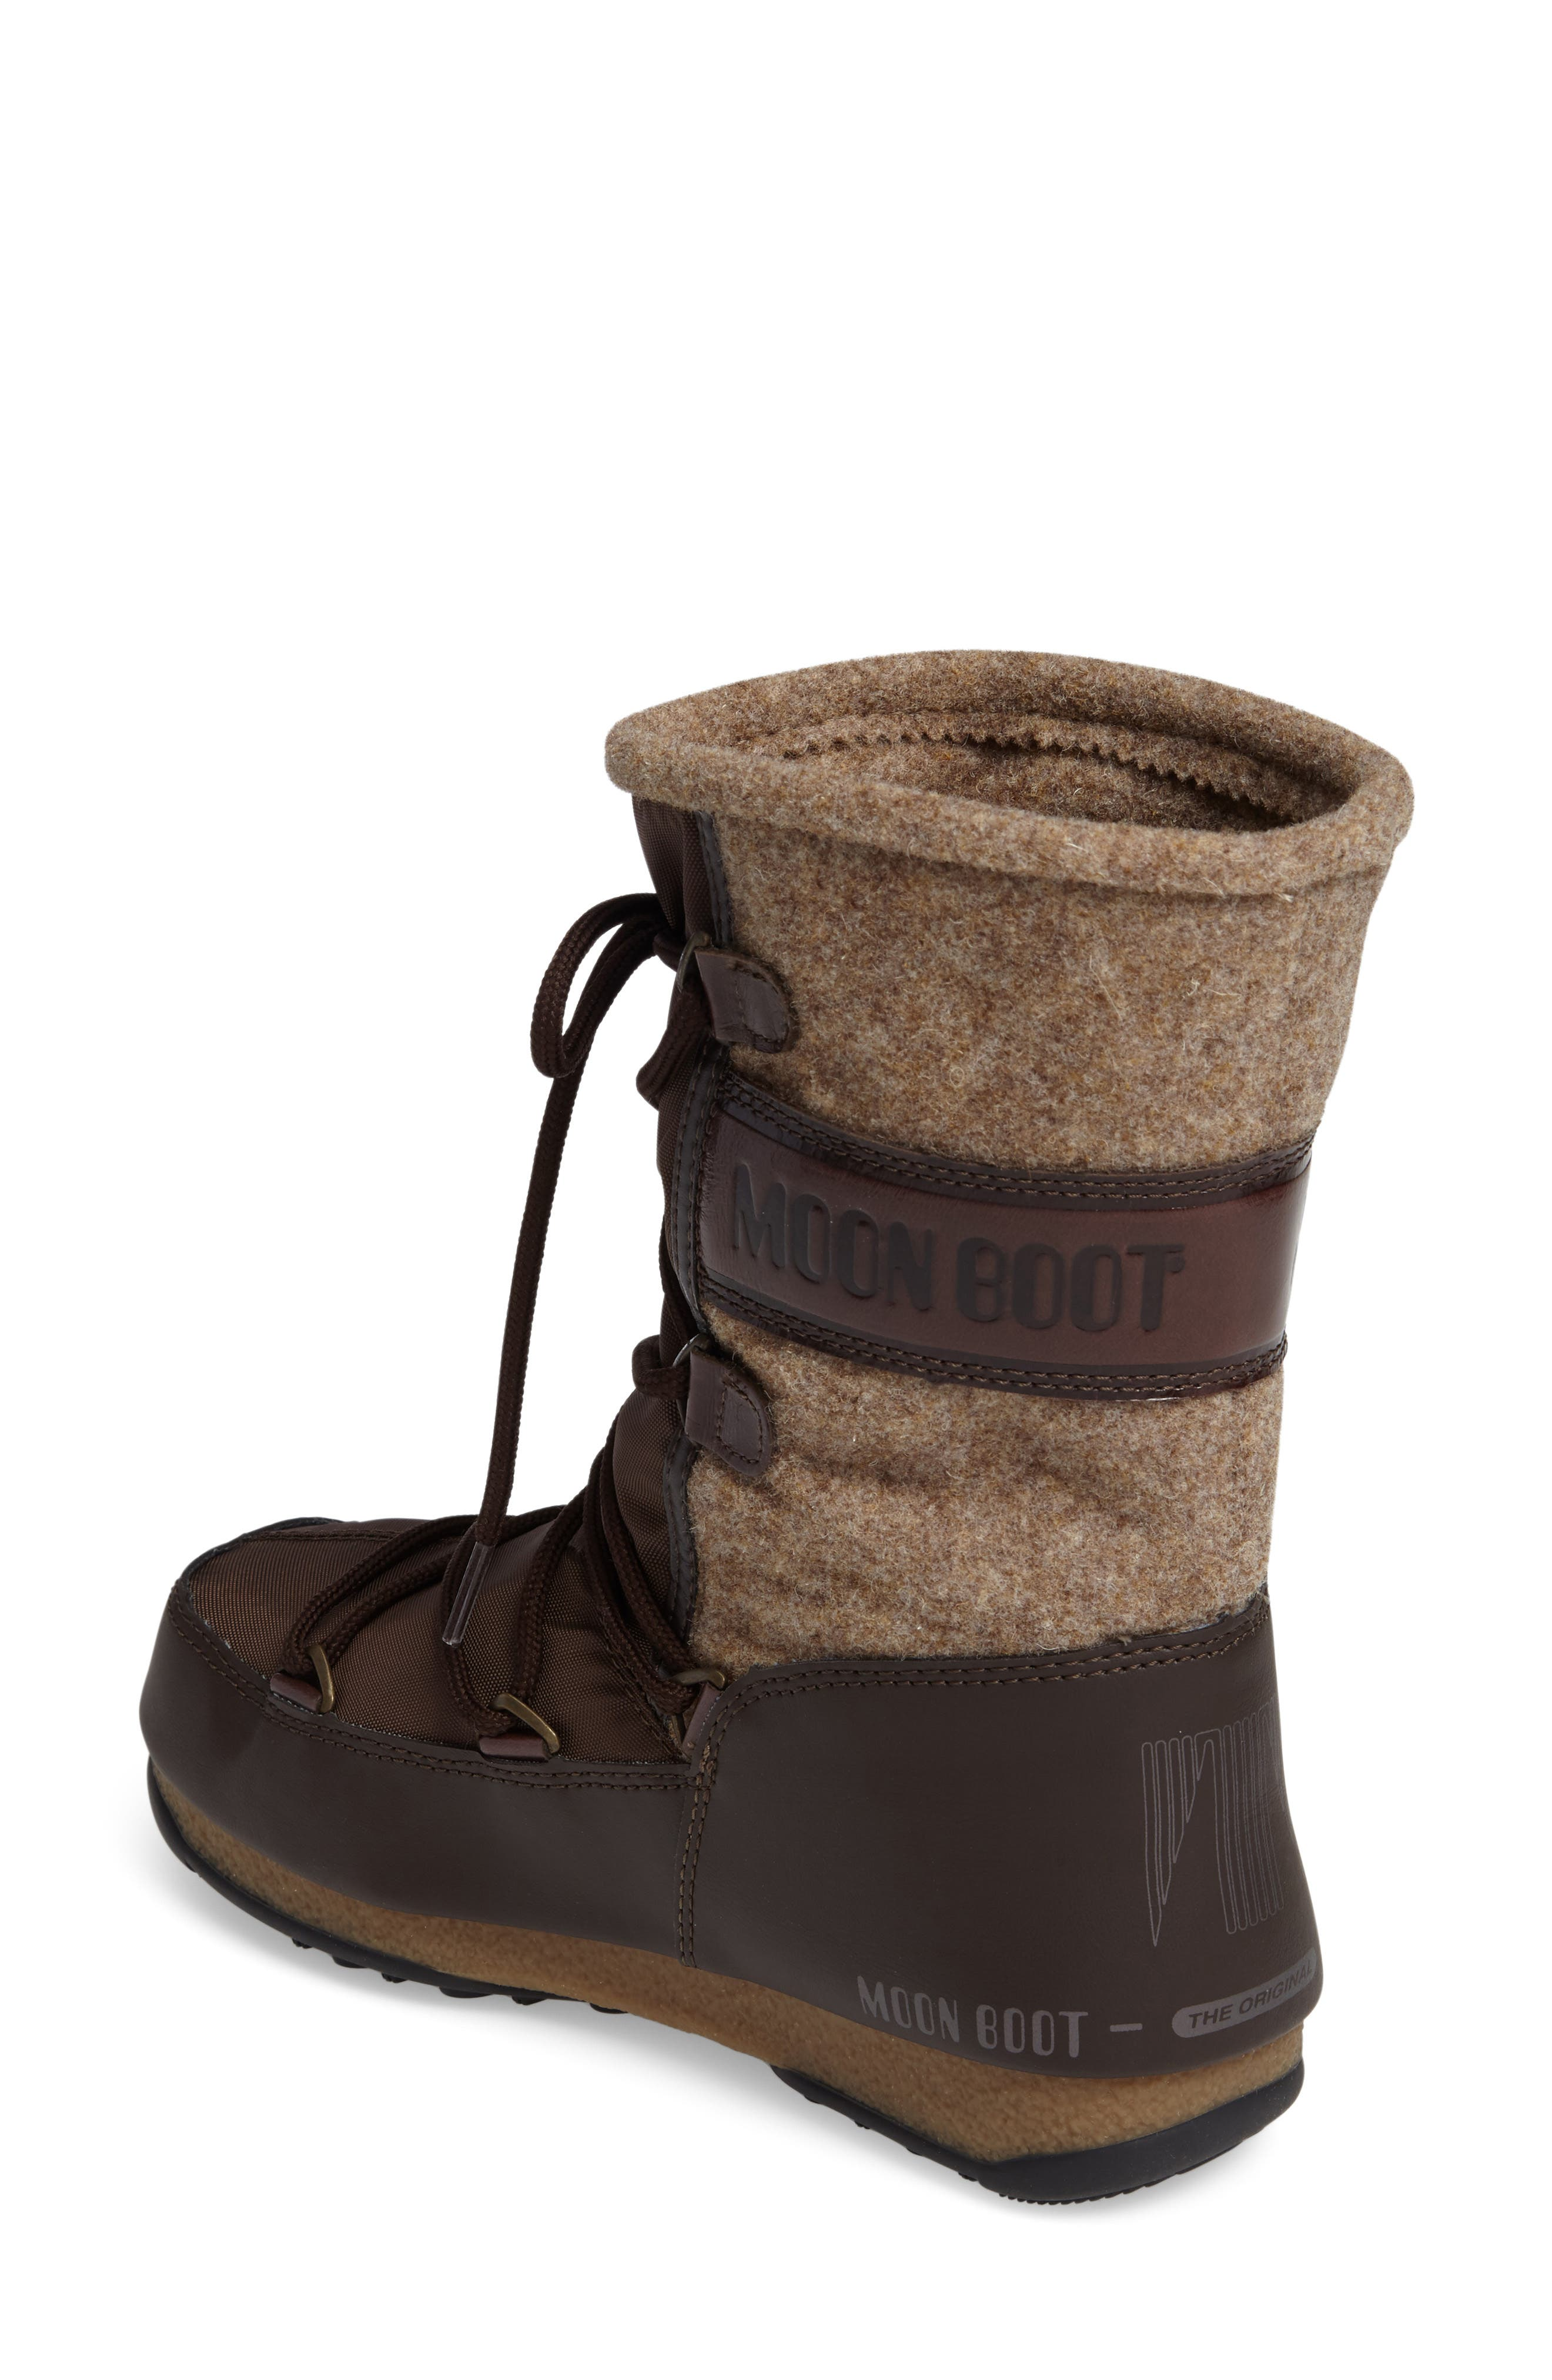 Vienna Waterproof Moon Boot<sup>®</sup>,                             Alternate thumbnail 4, color,